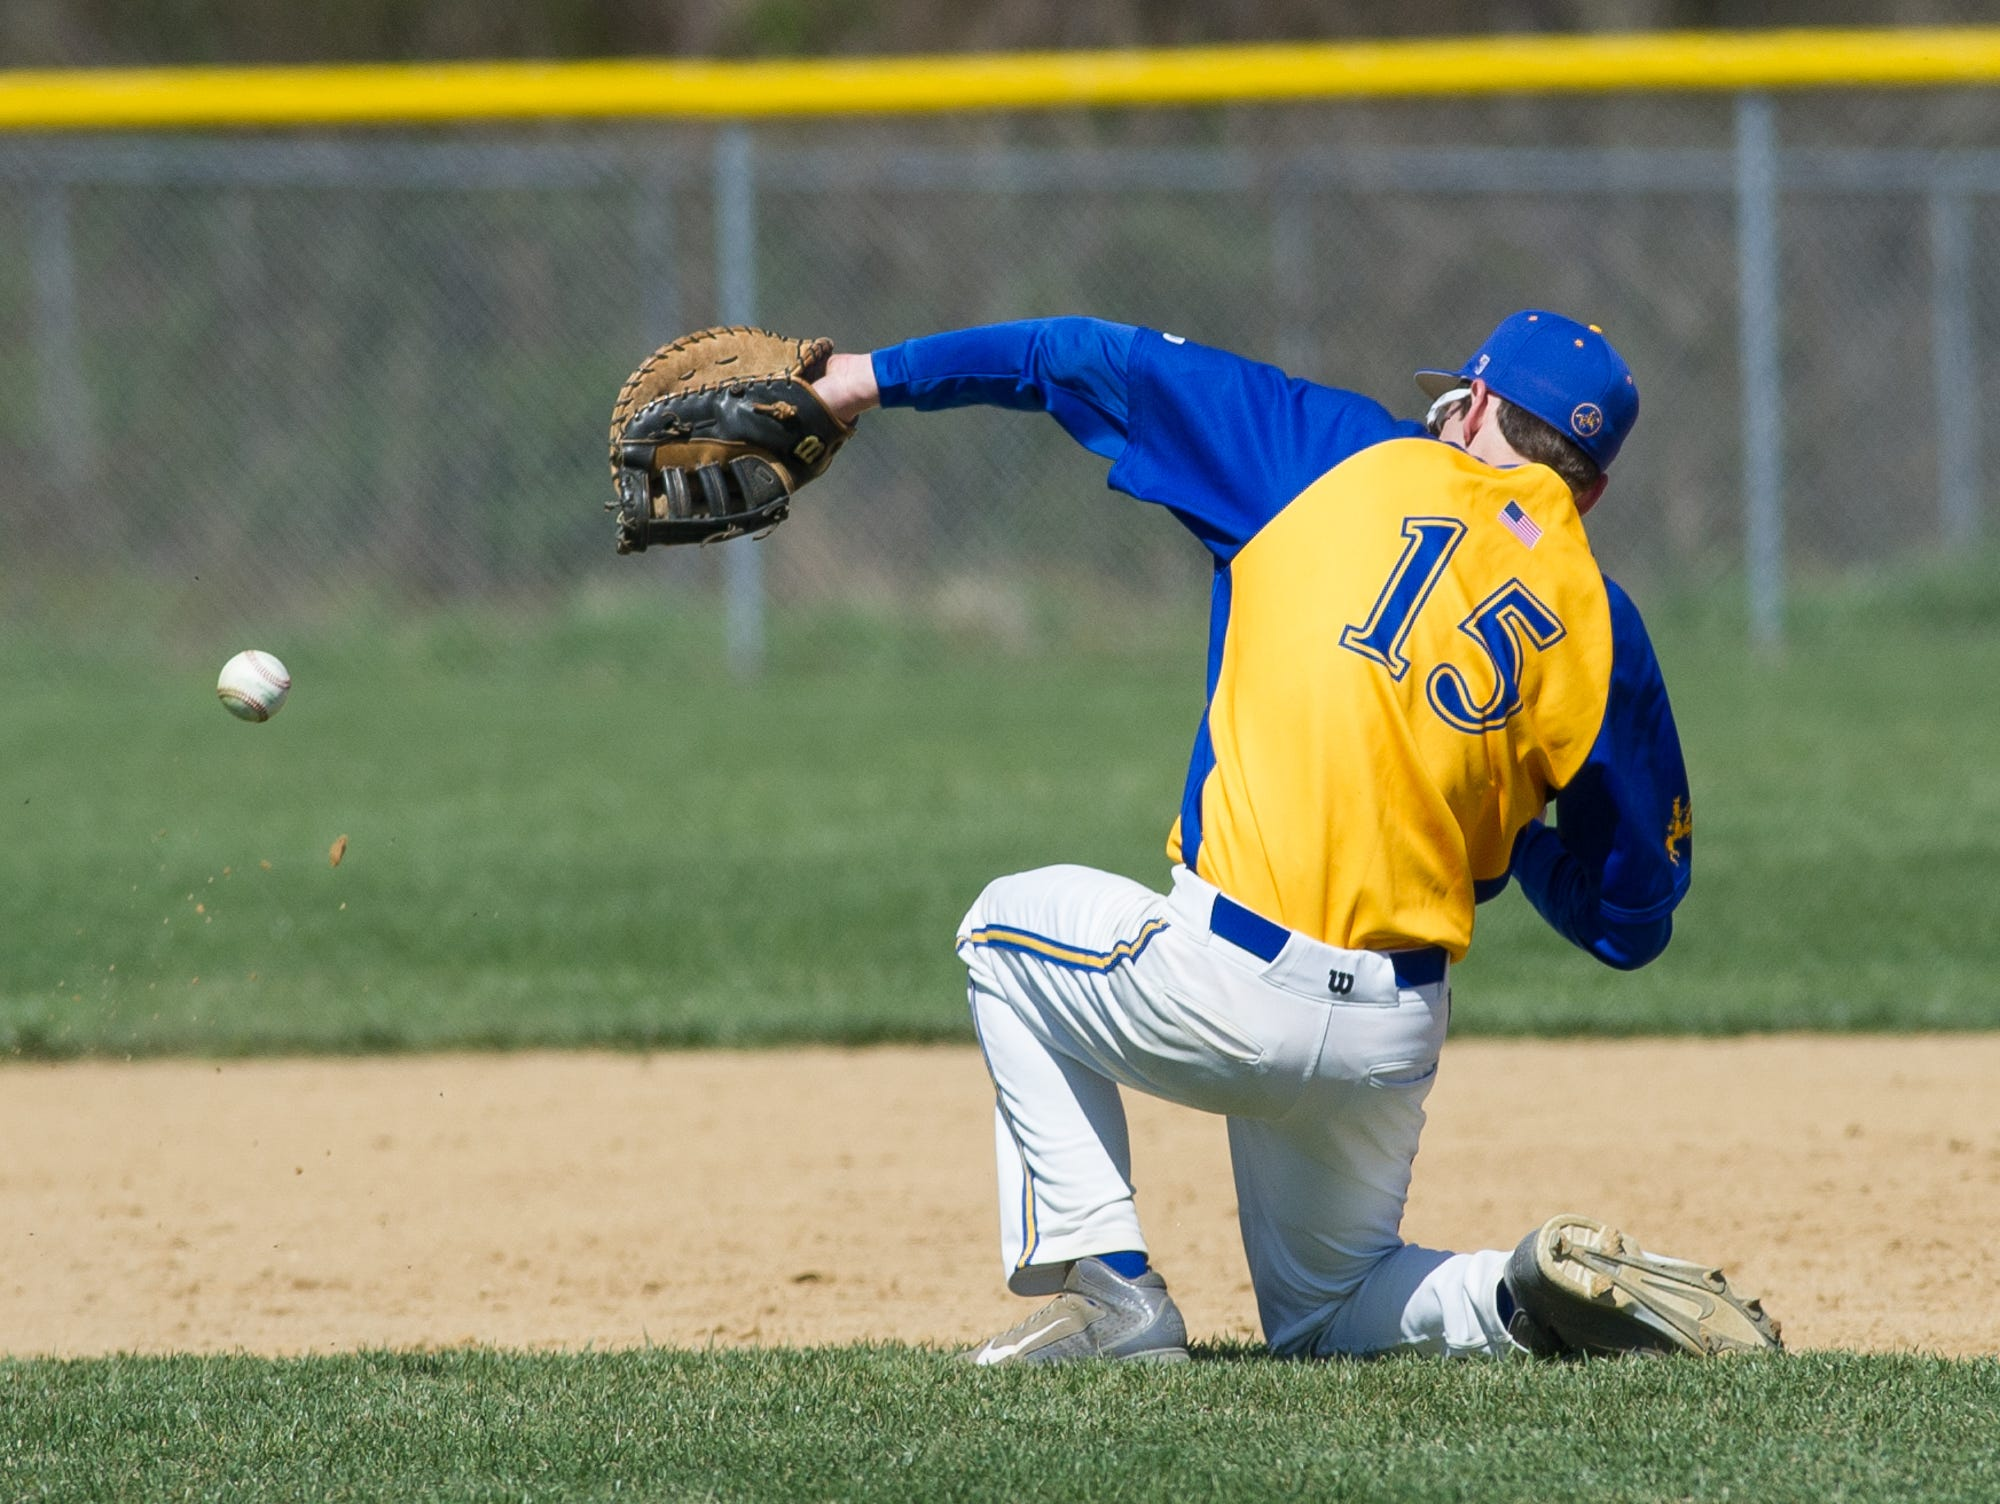 Caesar Rodney's first baseman Robert Williams (15) tries to stop a infield hit in their game against St. Marks.